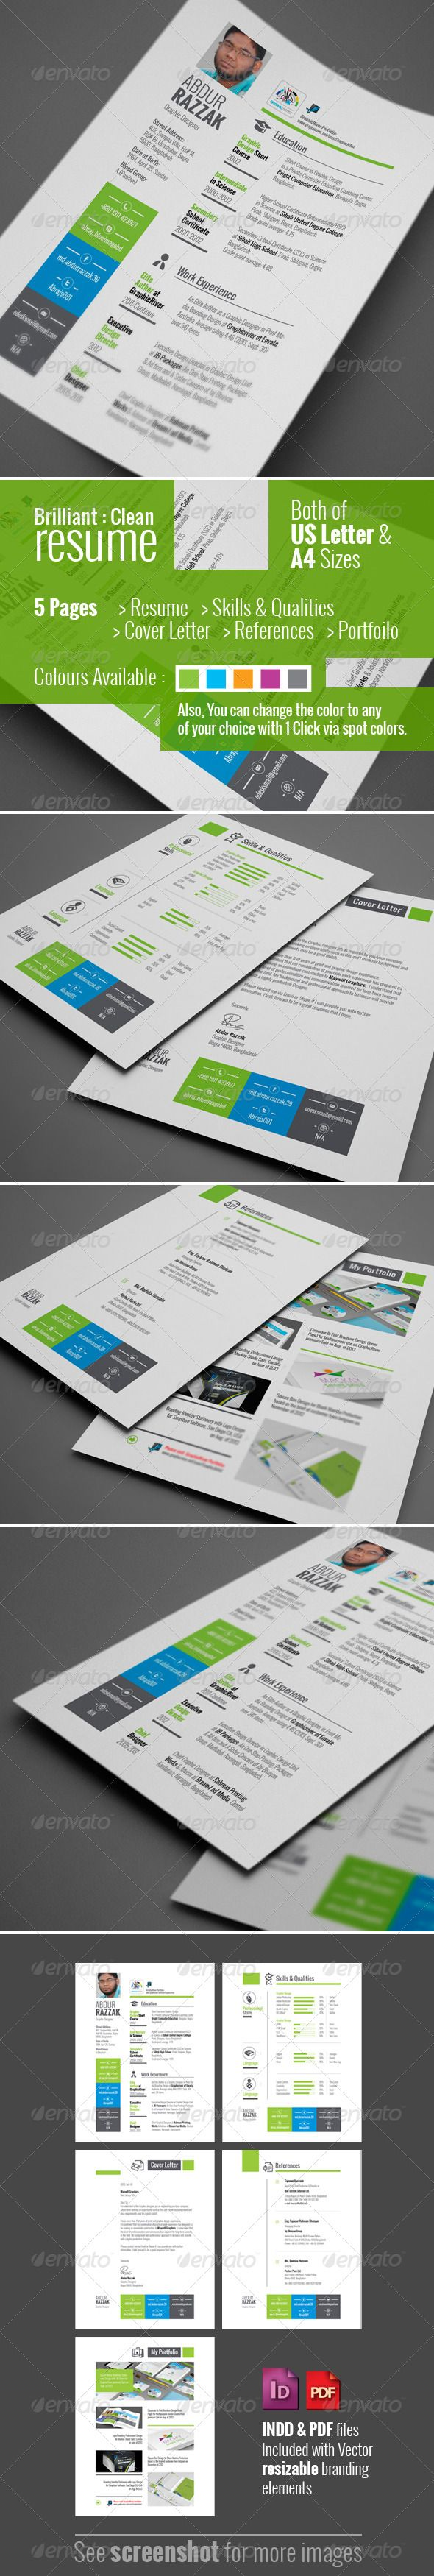 91 Best Resume Design Images On Pinterest